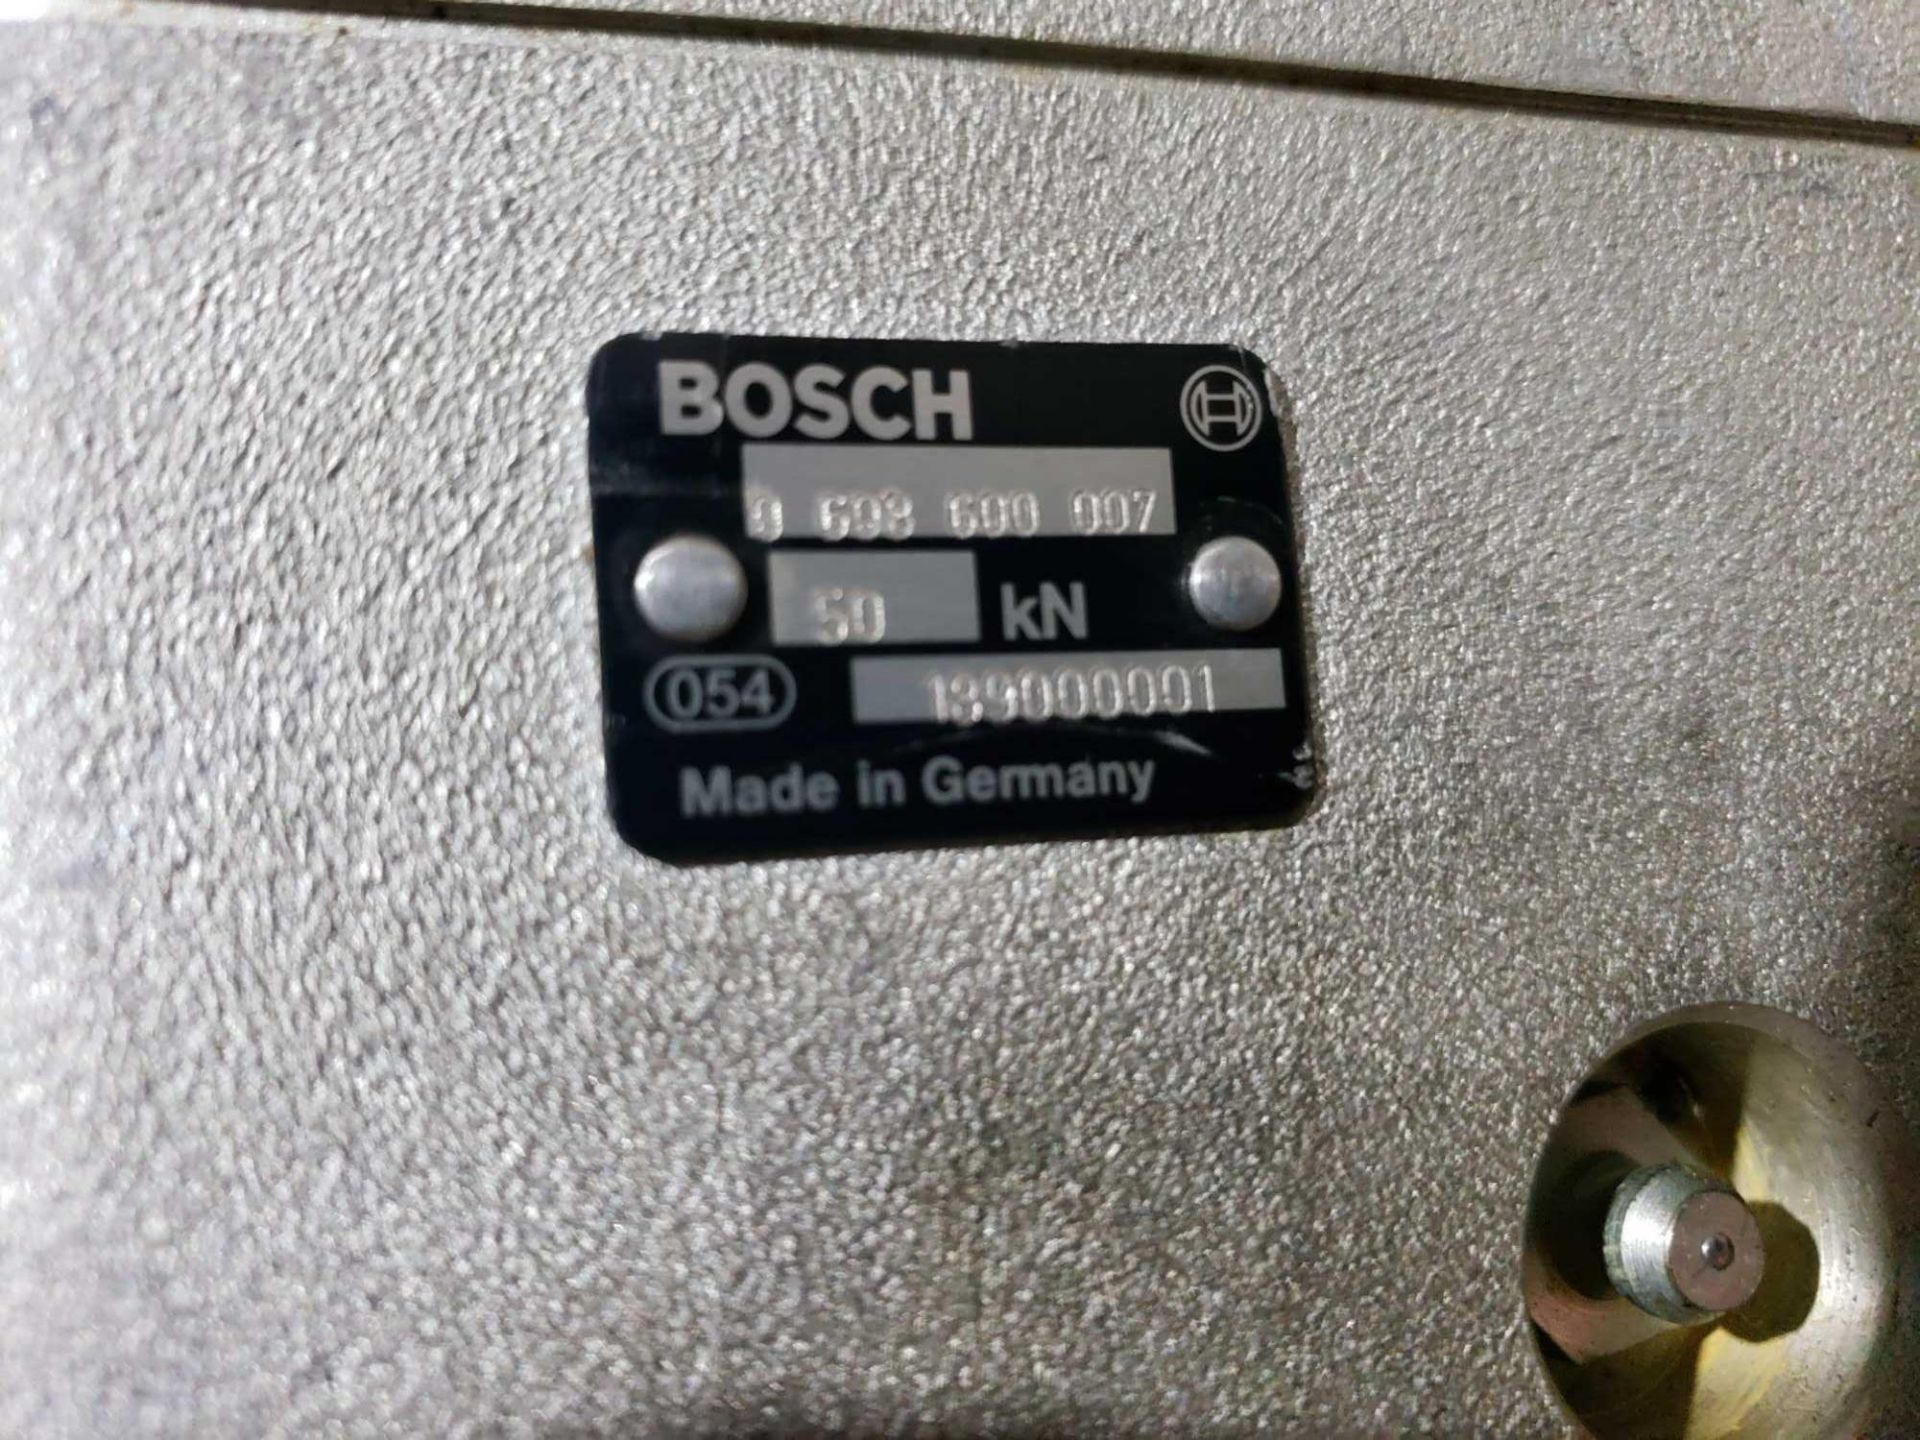 Lot 51 - Bosch Spindle drive. Part numbers 0-608-609-007, 0-608-701-004, and 3-608-613-001.